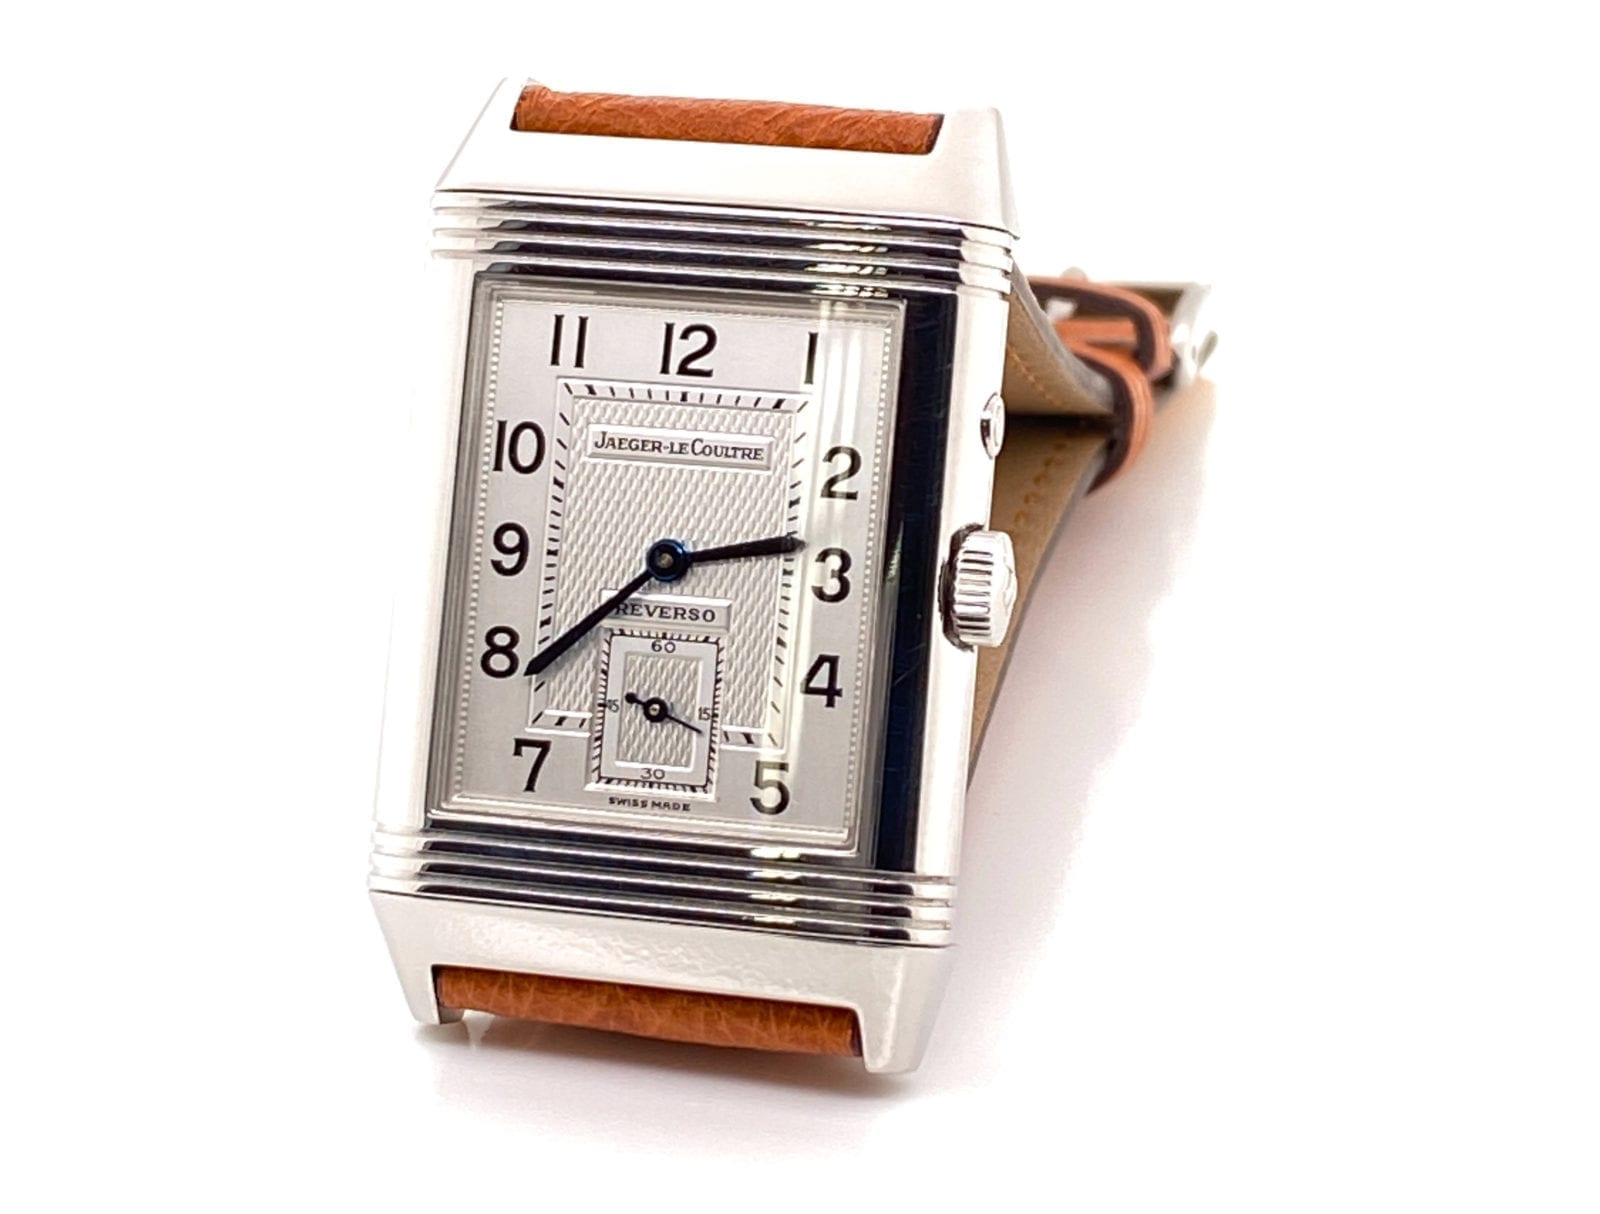 Montre Jaeger LeCoultre Reverso Day Night